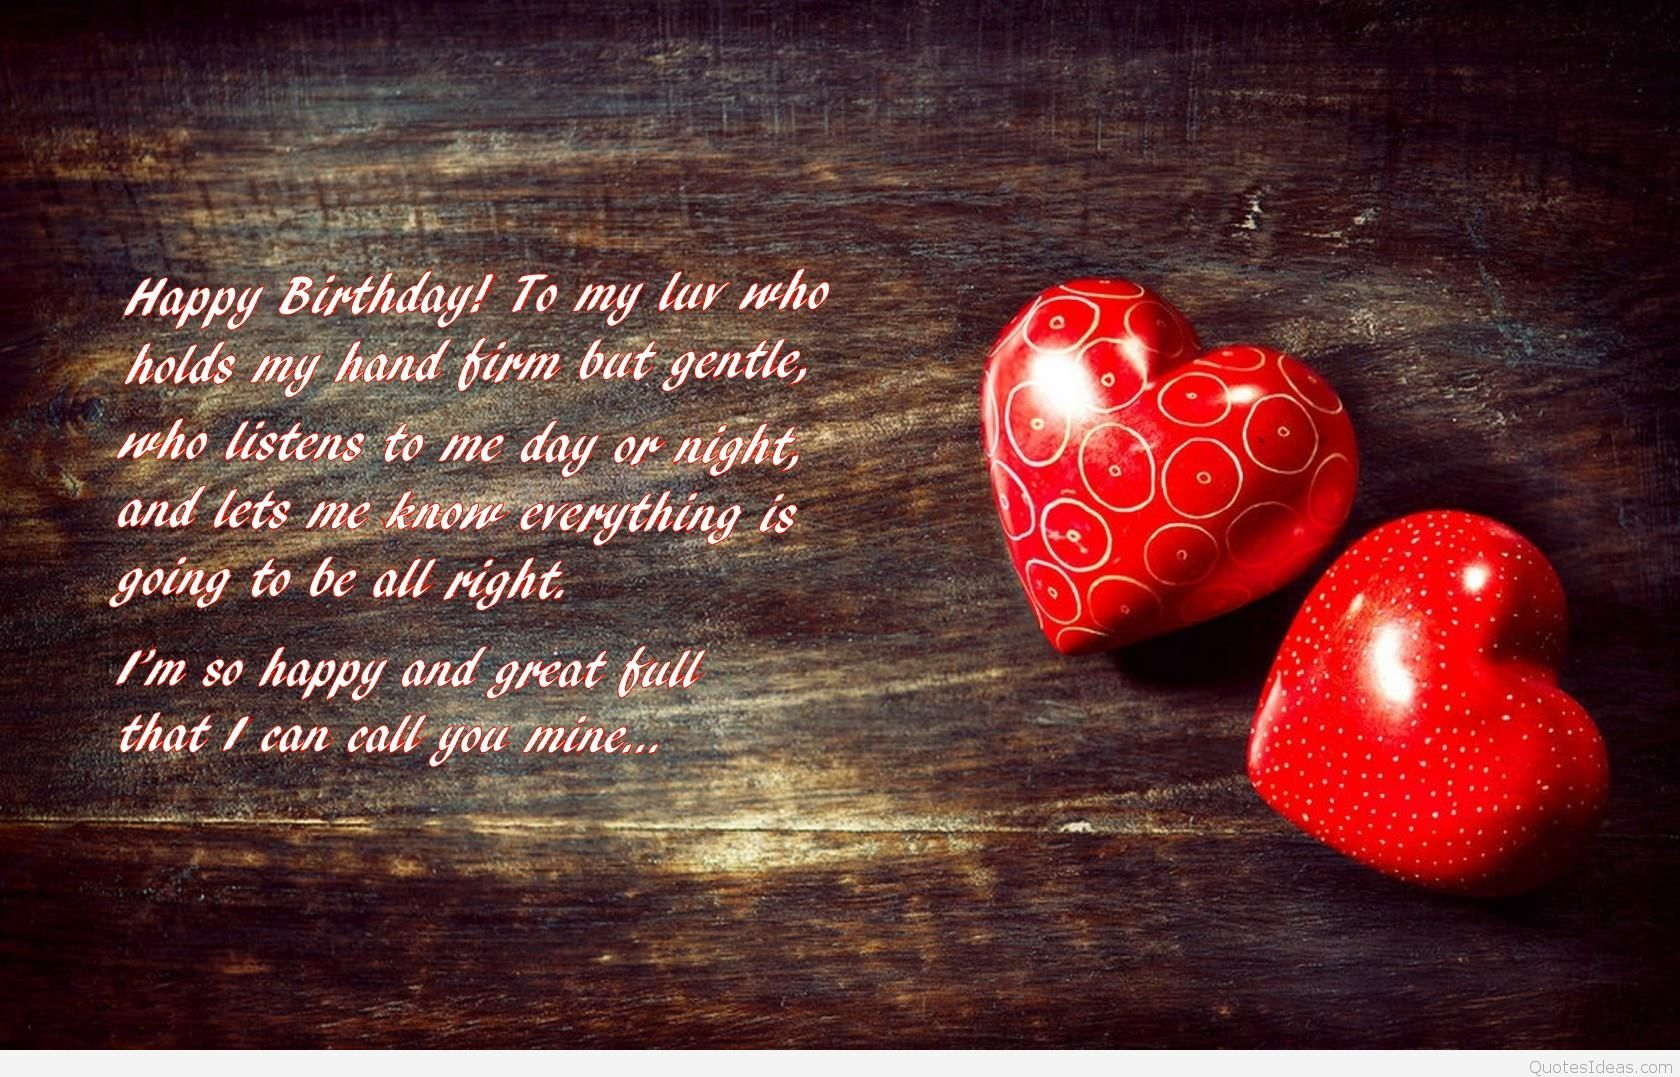 birthday wallpaper for lover ; Happy-Birthday-love-wallpaper-with-quote